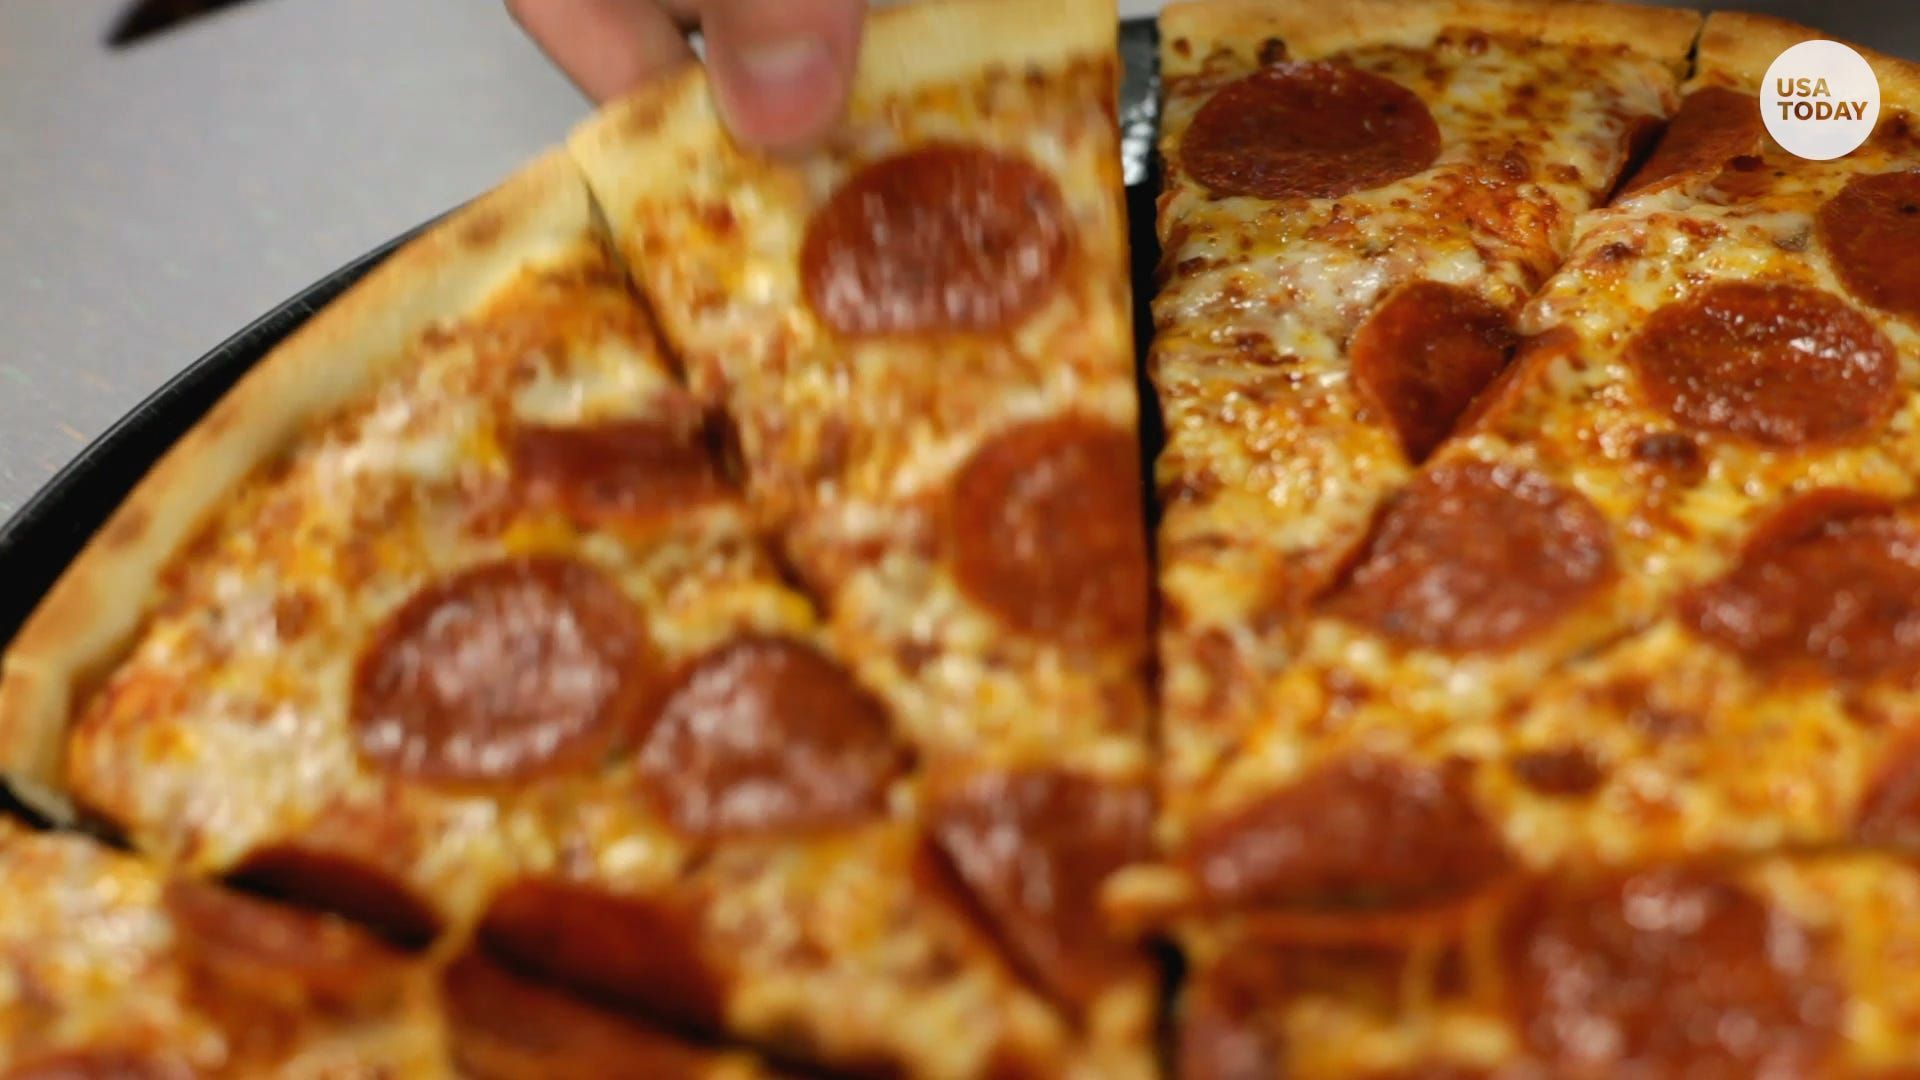 Get Free Pizza And Deals For National Pizza Day At Papa Johns Pizza Hut And More Sunday Usa Today House Decor Club Pizza Day National Pizza Pizza Hut